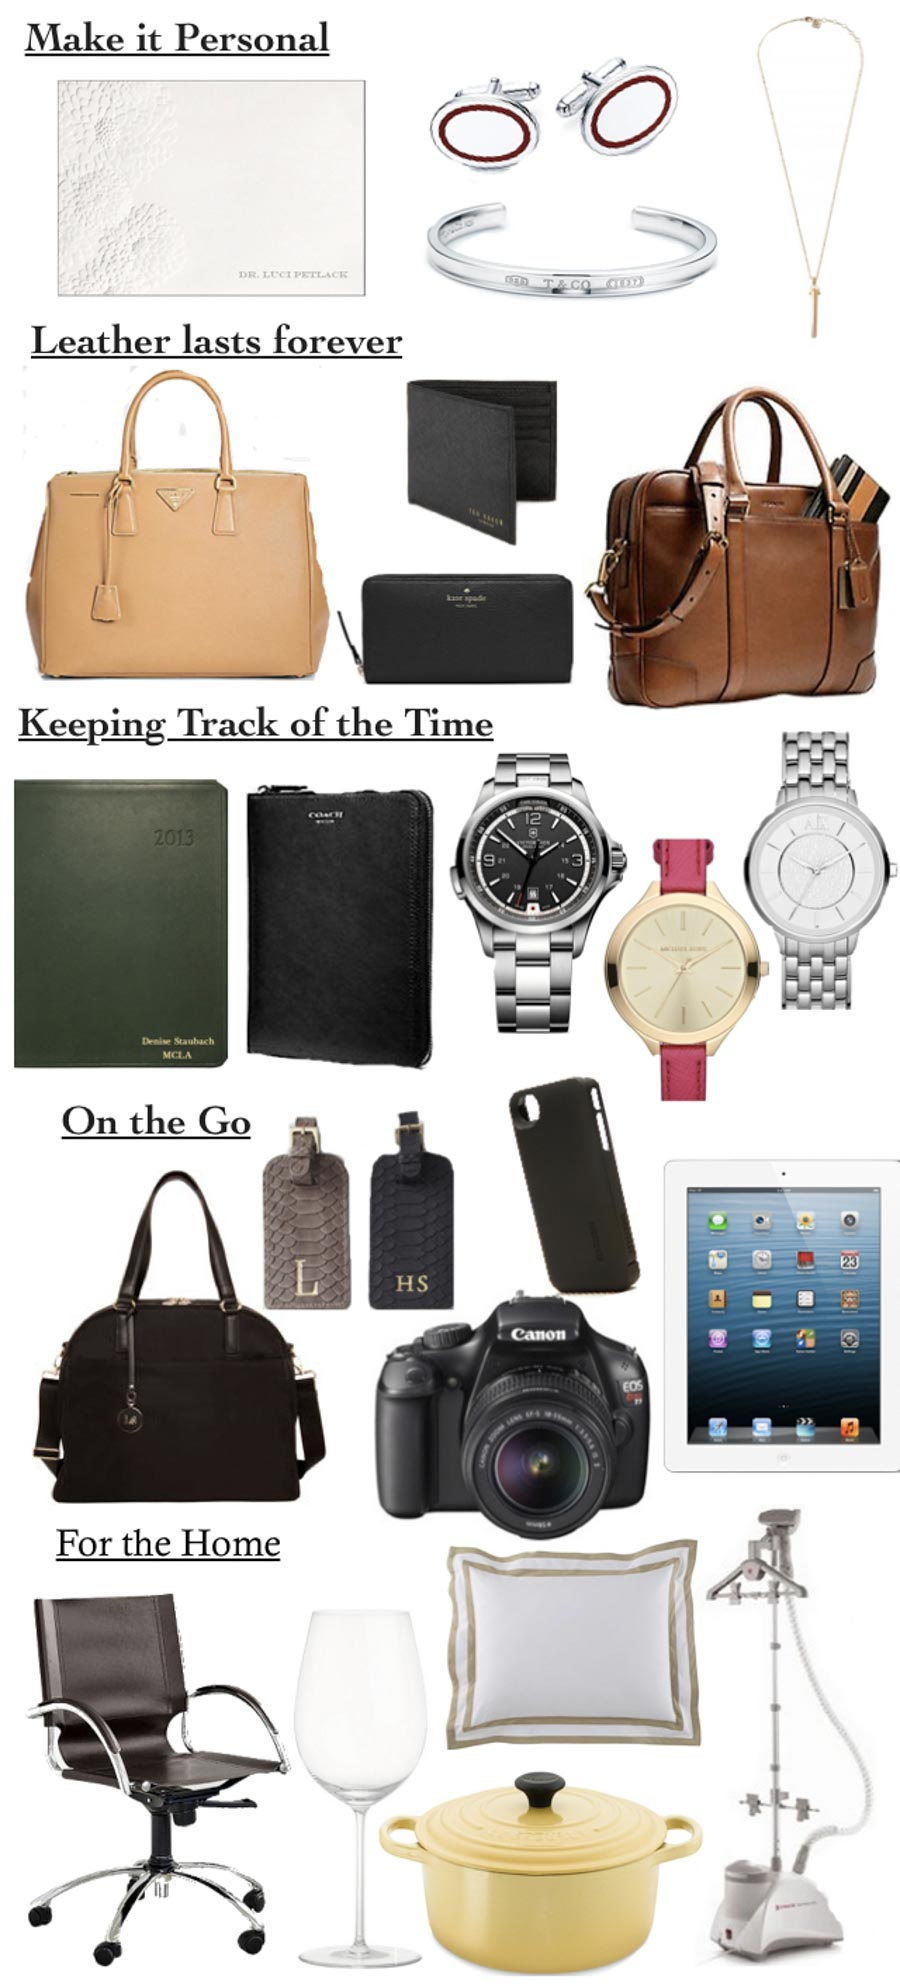 PhD Graduation Gifts - What to Get PhD Graduate